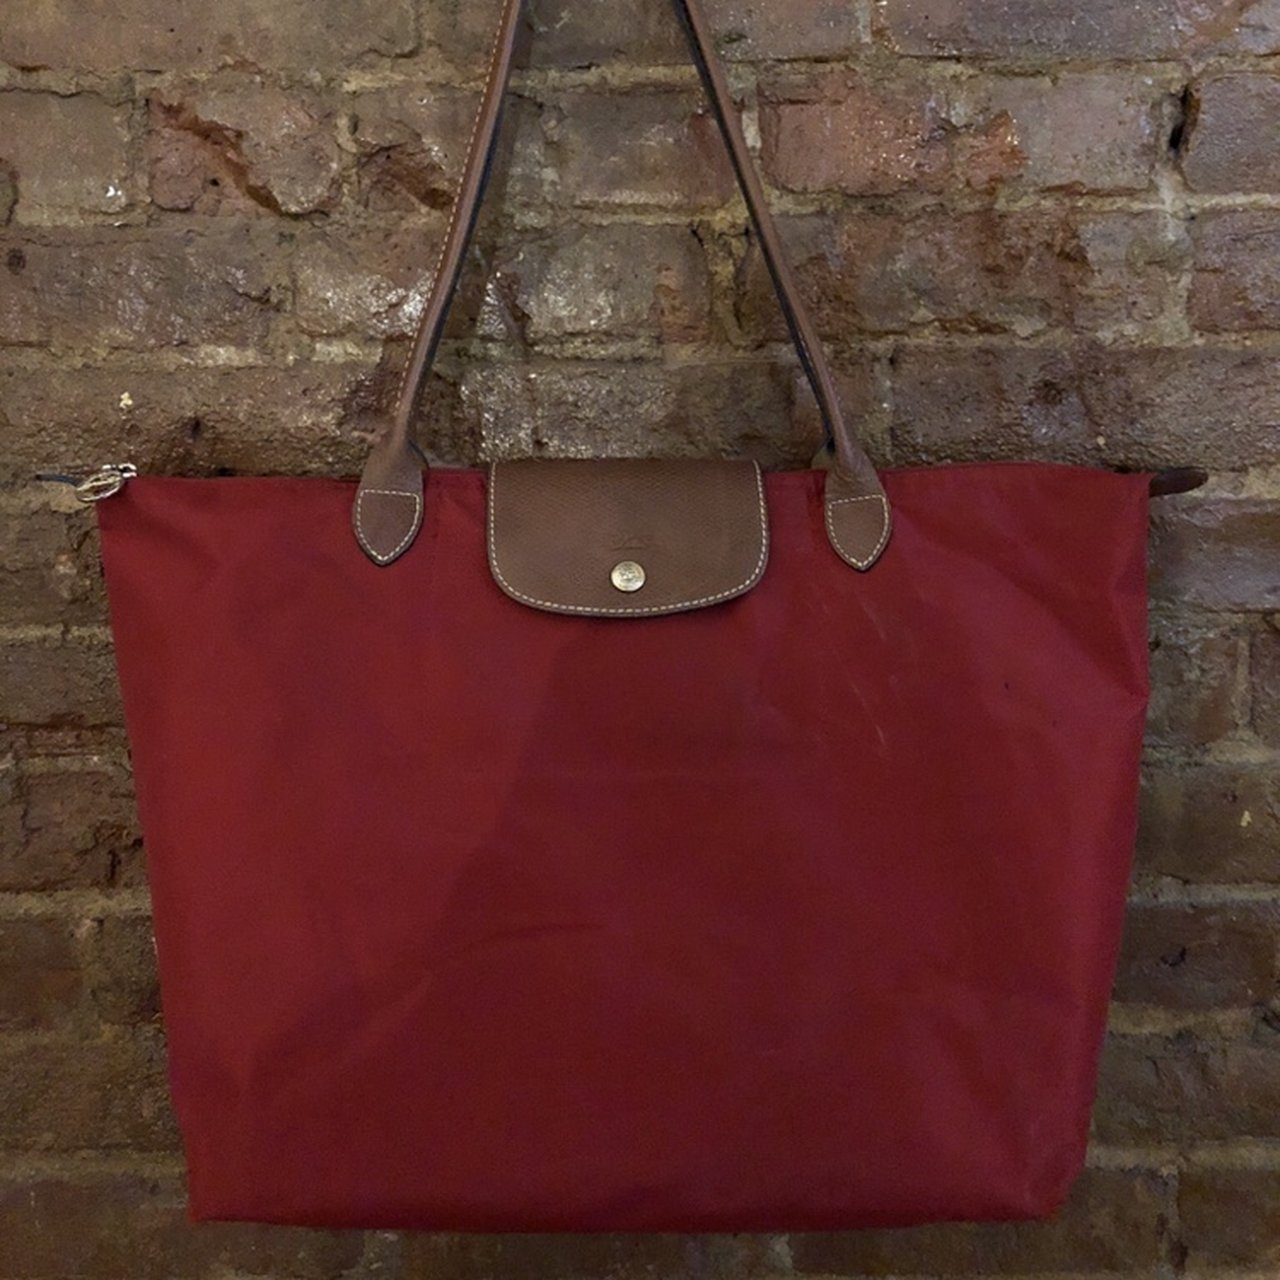 Longchamp Le Pliage Medium Tote Pre love and in great - Depop 122d325ad01d8